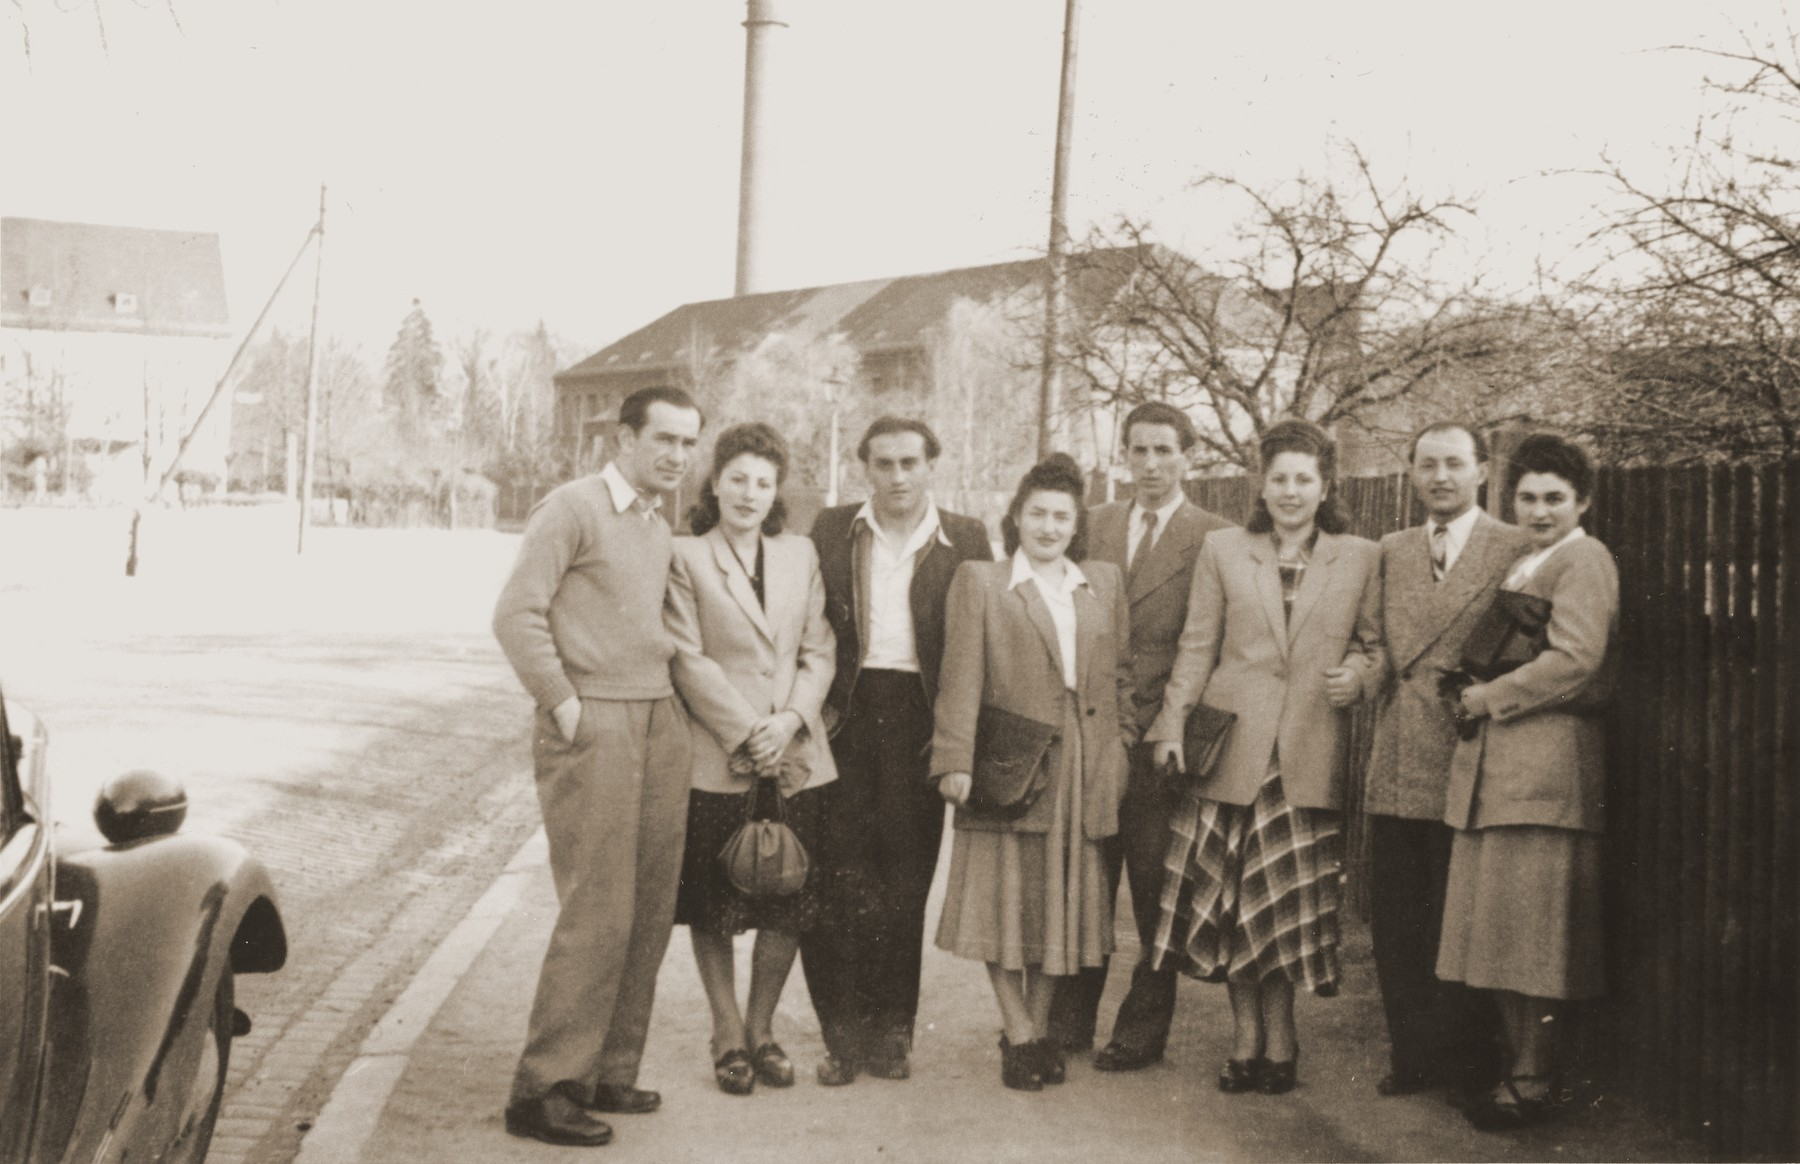 Group portrait of Jewish DPs on a street in the Fuerth displaced persons camp.    Pictured from left to right are Drujak, Regina Rosenberg, Kazik Plawner, Sala Rafalowicz, Cudek Rosenberg, Esther Rosenberg Blacharowicz, Tadek Blacharowicz and Eugenia Lanceter.